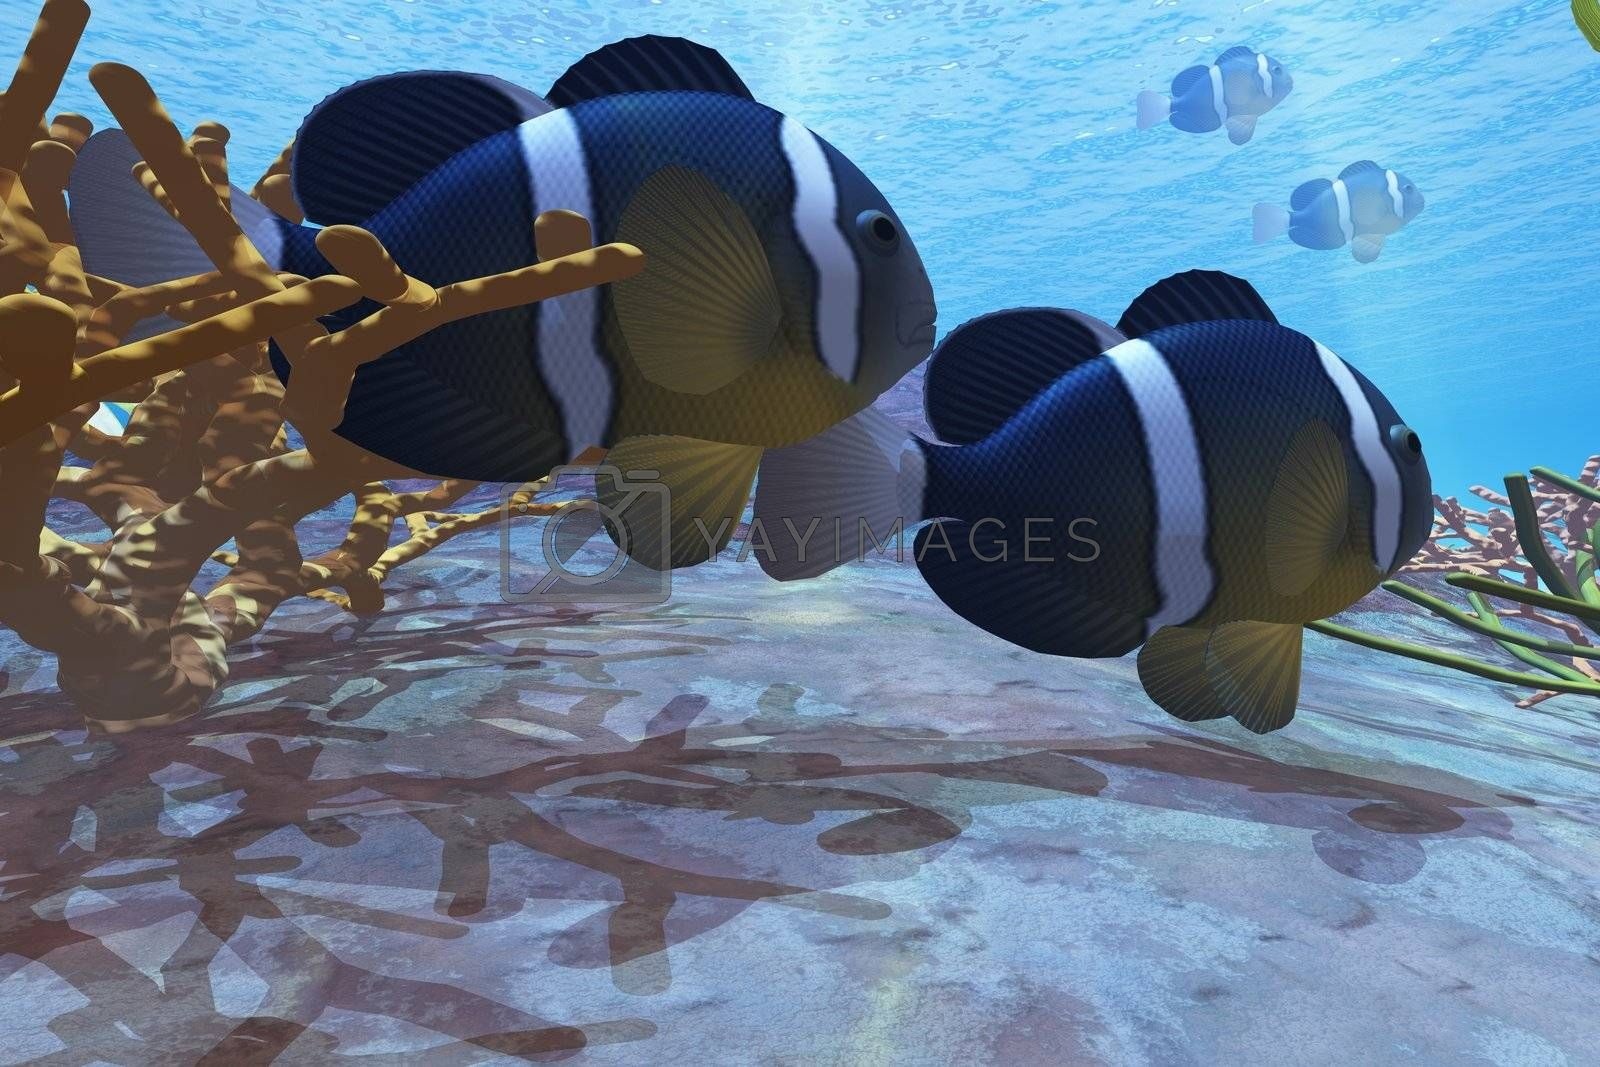 Two clownfish swim among the coral beds on an ocean reef.